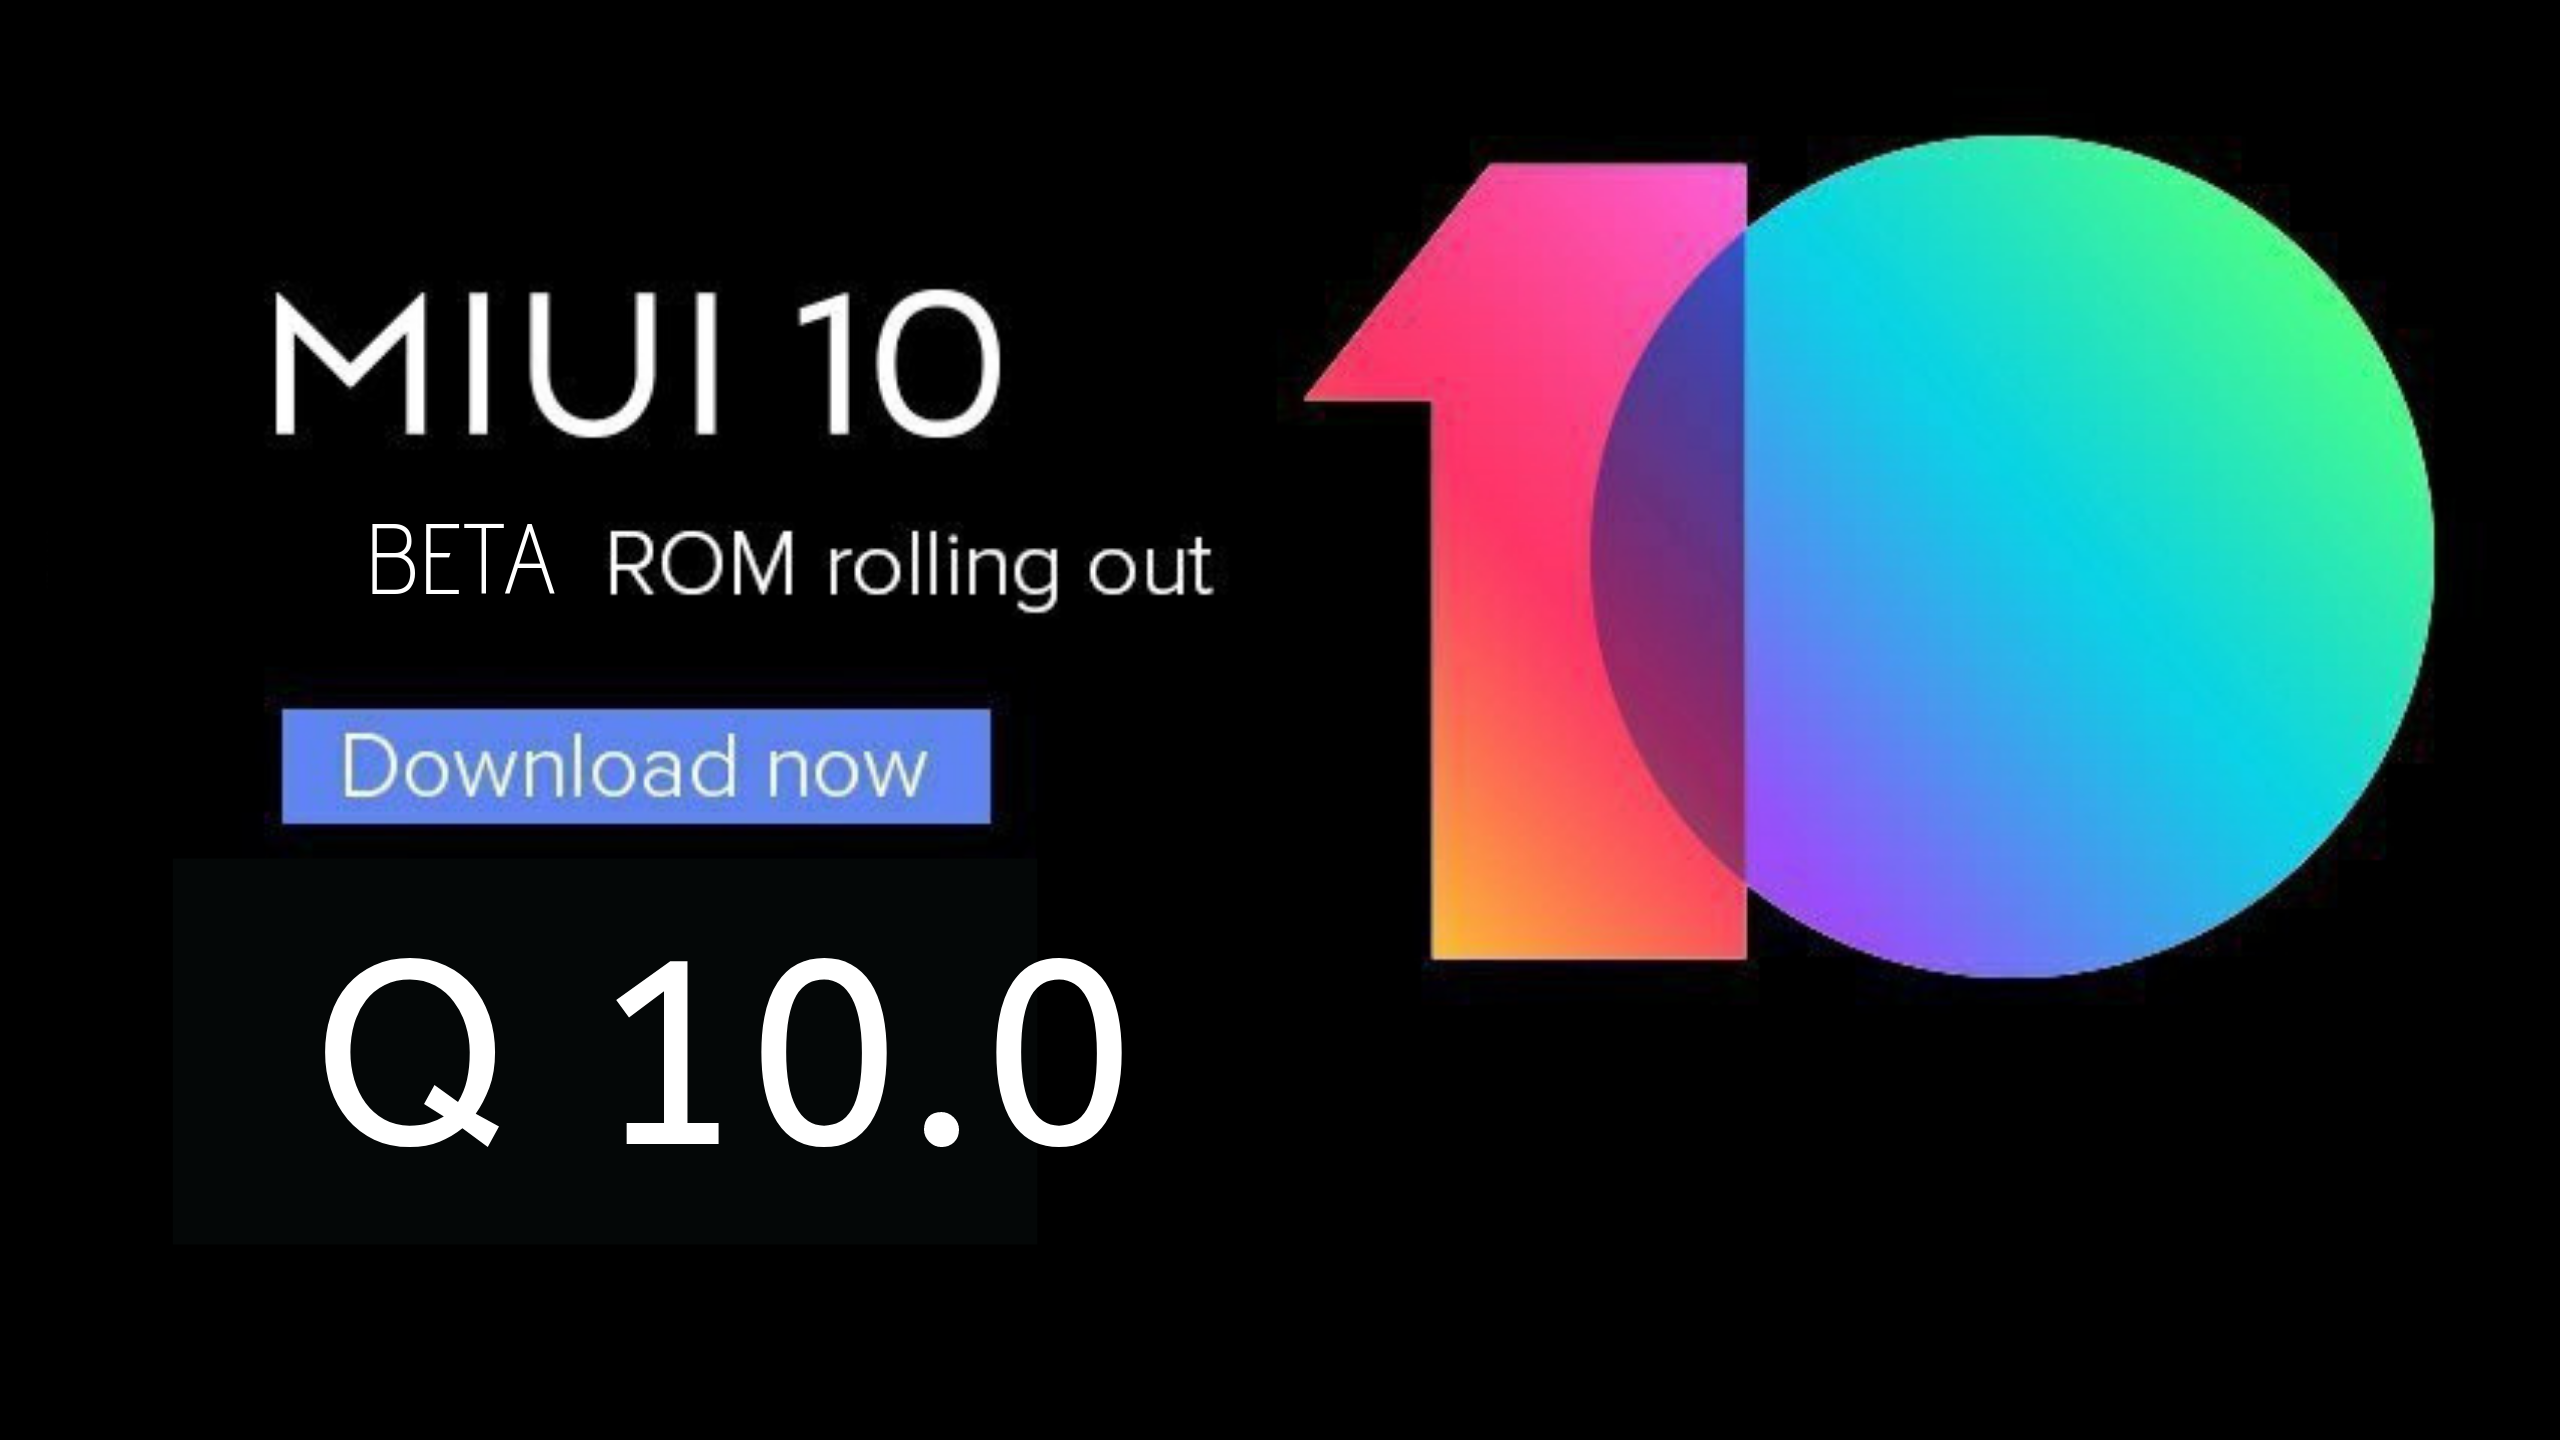 Android Q Miui 10 9 8 8 Beta Update for Redmi K20 Pro- Download Link